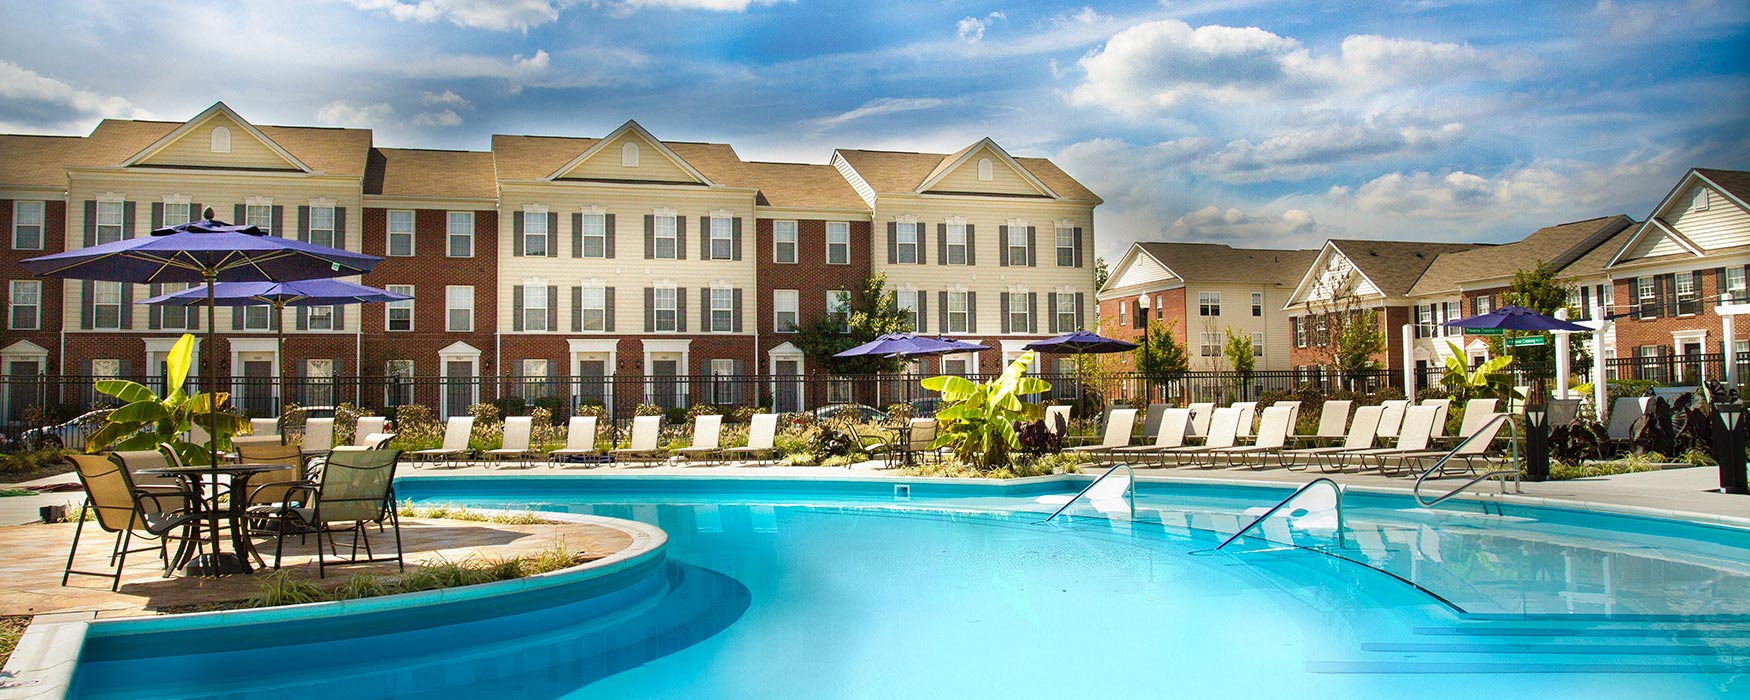 LC Preserve Crossing | Gahanna Apartments | Pool